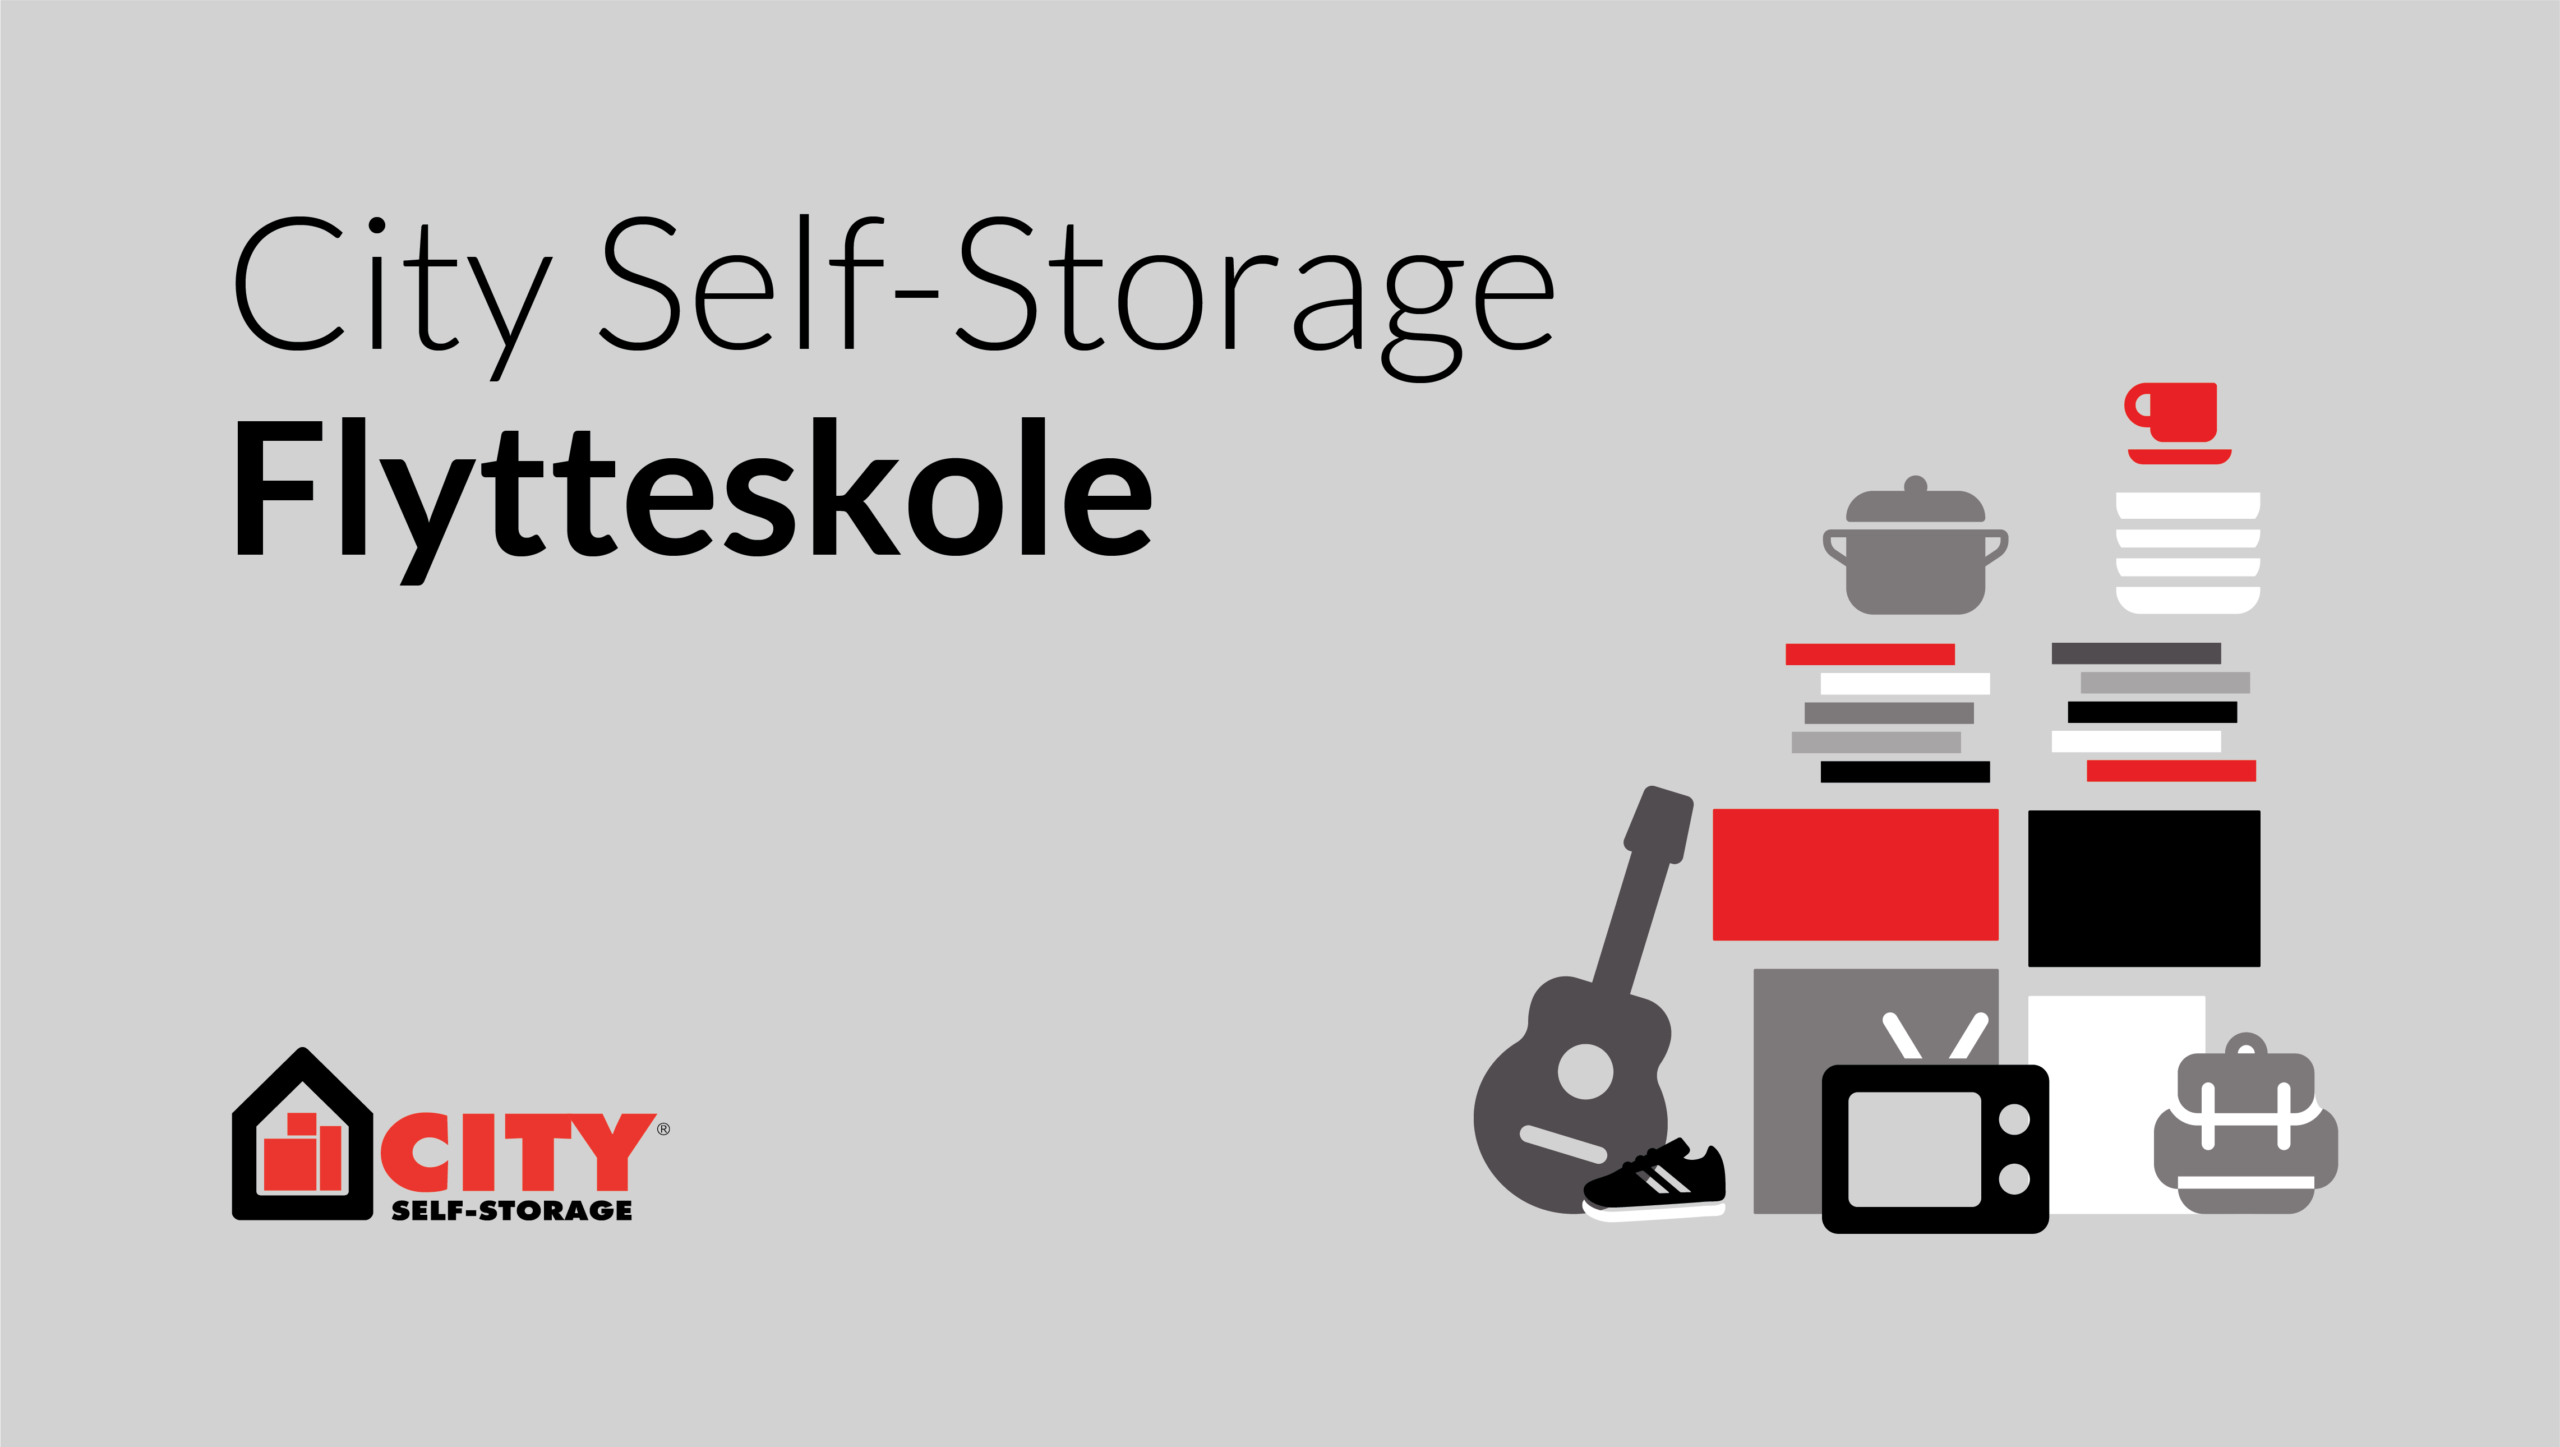 City Self-Storage flytteskole